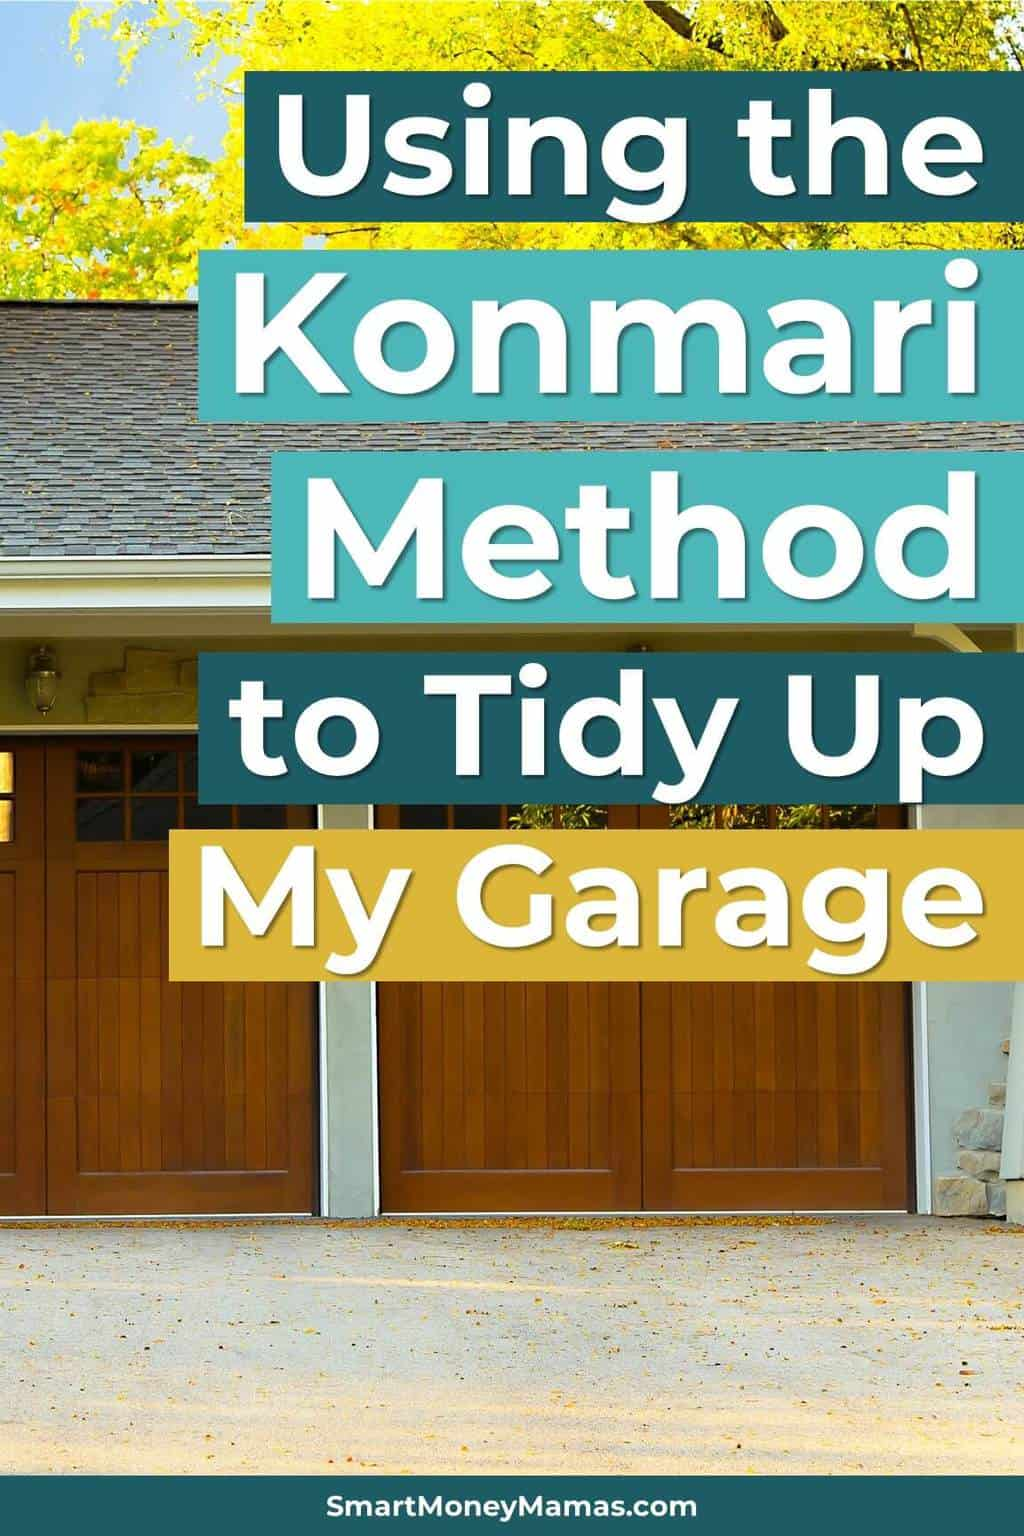 How I Used the Konmari Method to Clean Up My Garage